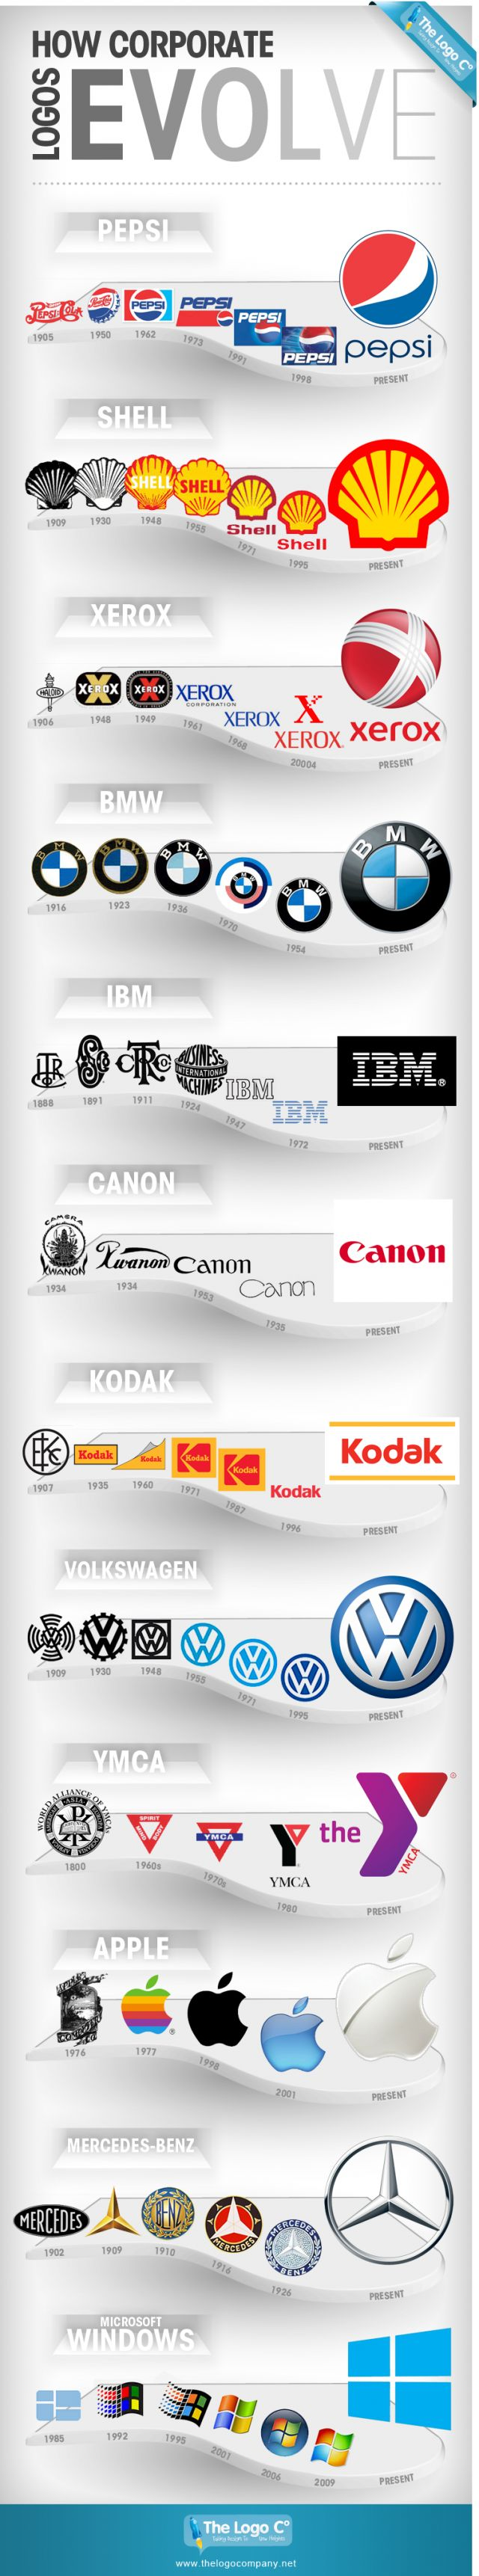 Daily Infographic | How Corporate Logos Evolve [Infographic] - sophiealice.goossens@gmail.com - Gmail